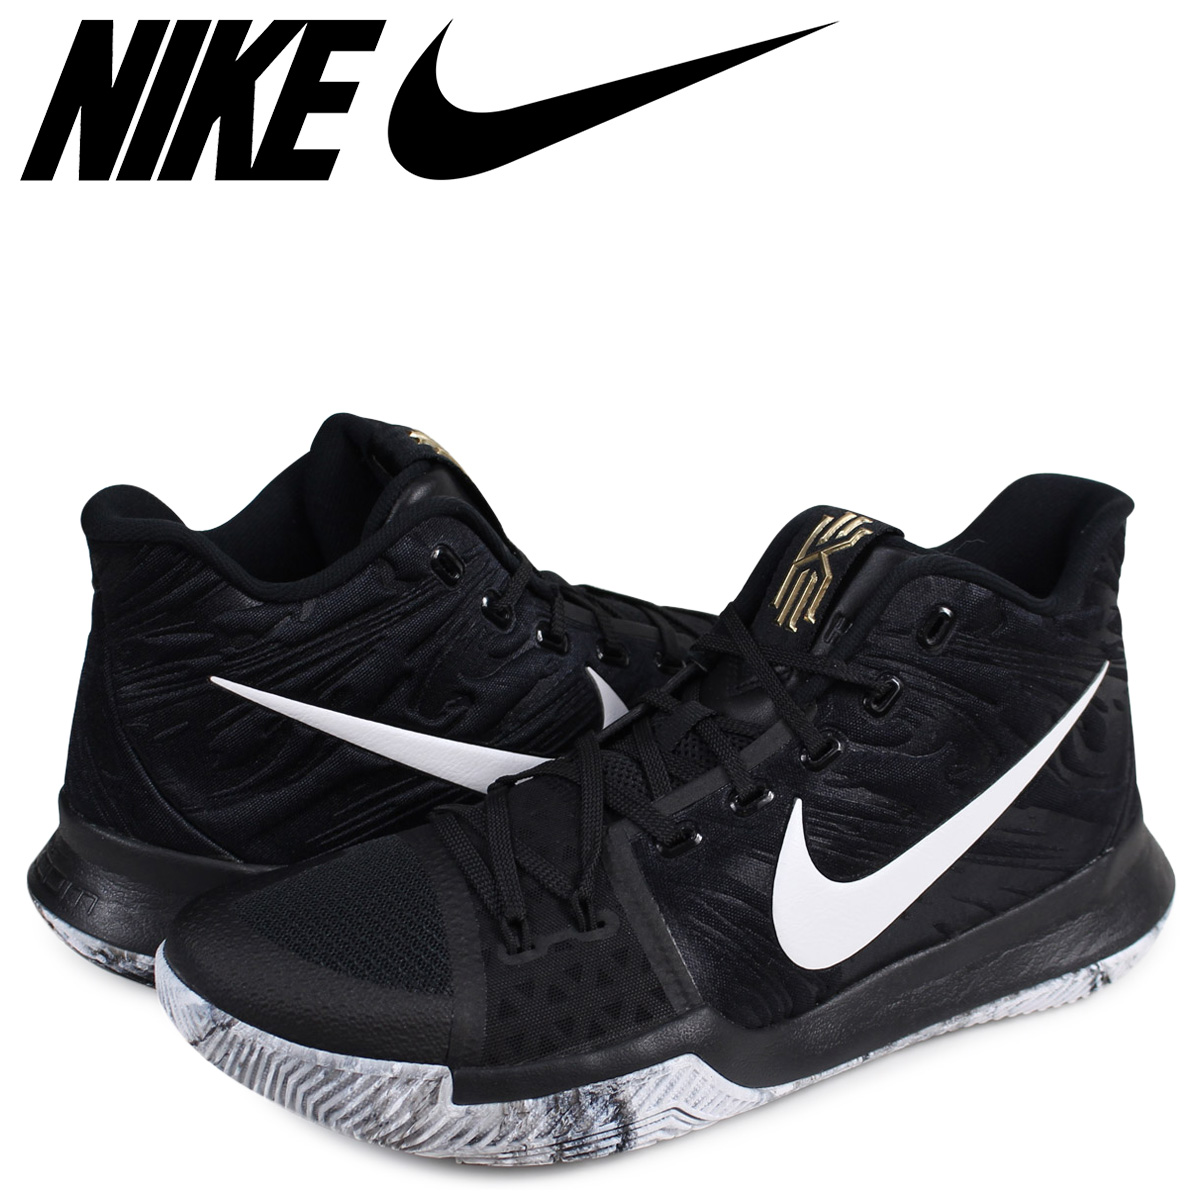 Sugar Online Shop  NIKE Nike chi Lee 3 sneakers men KYRIE 3 BHM ... 3f01663ee